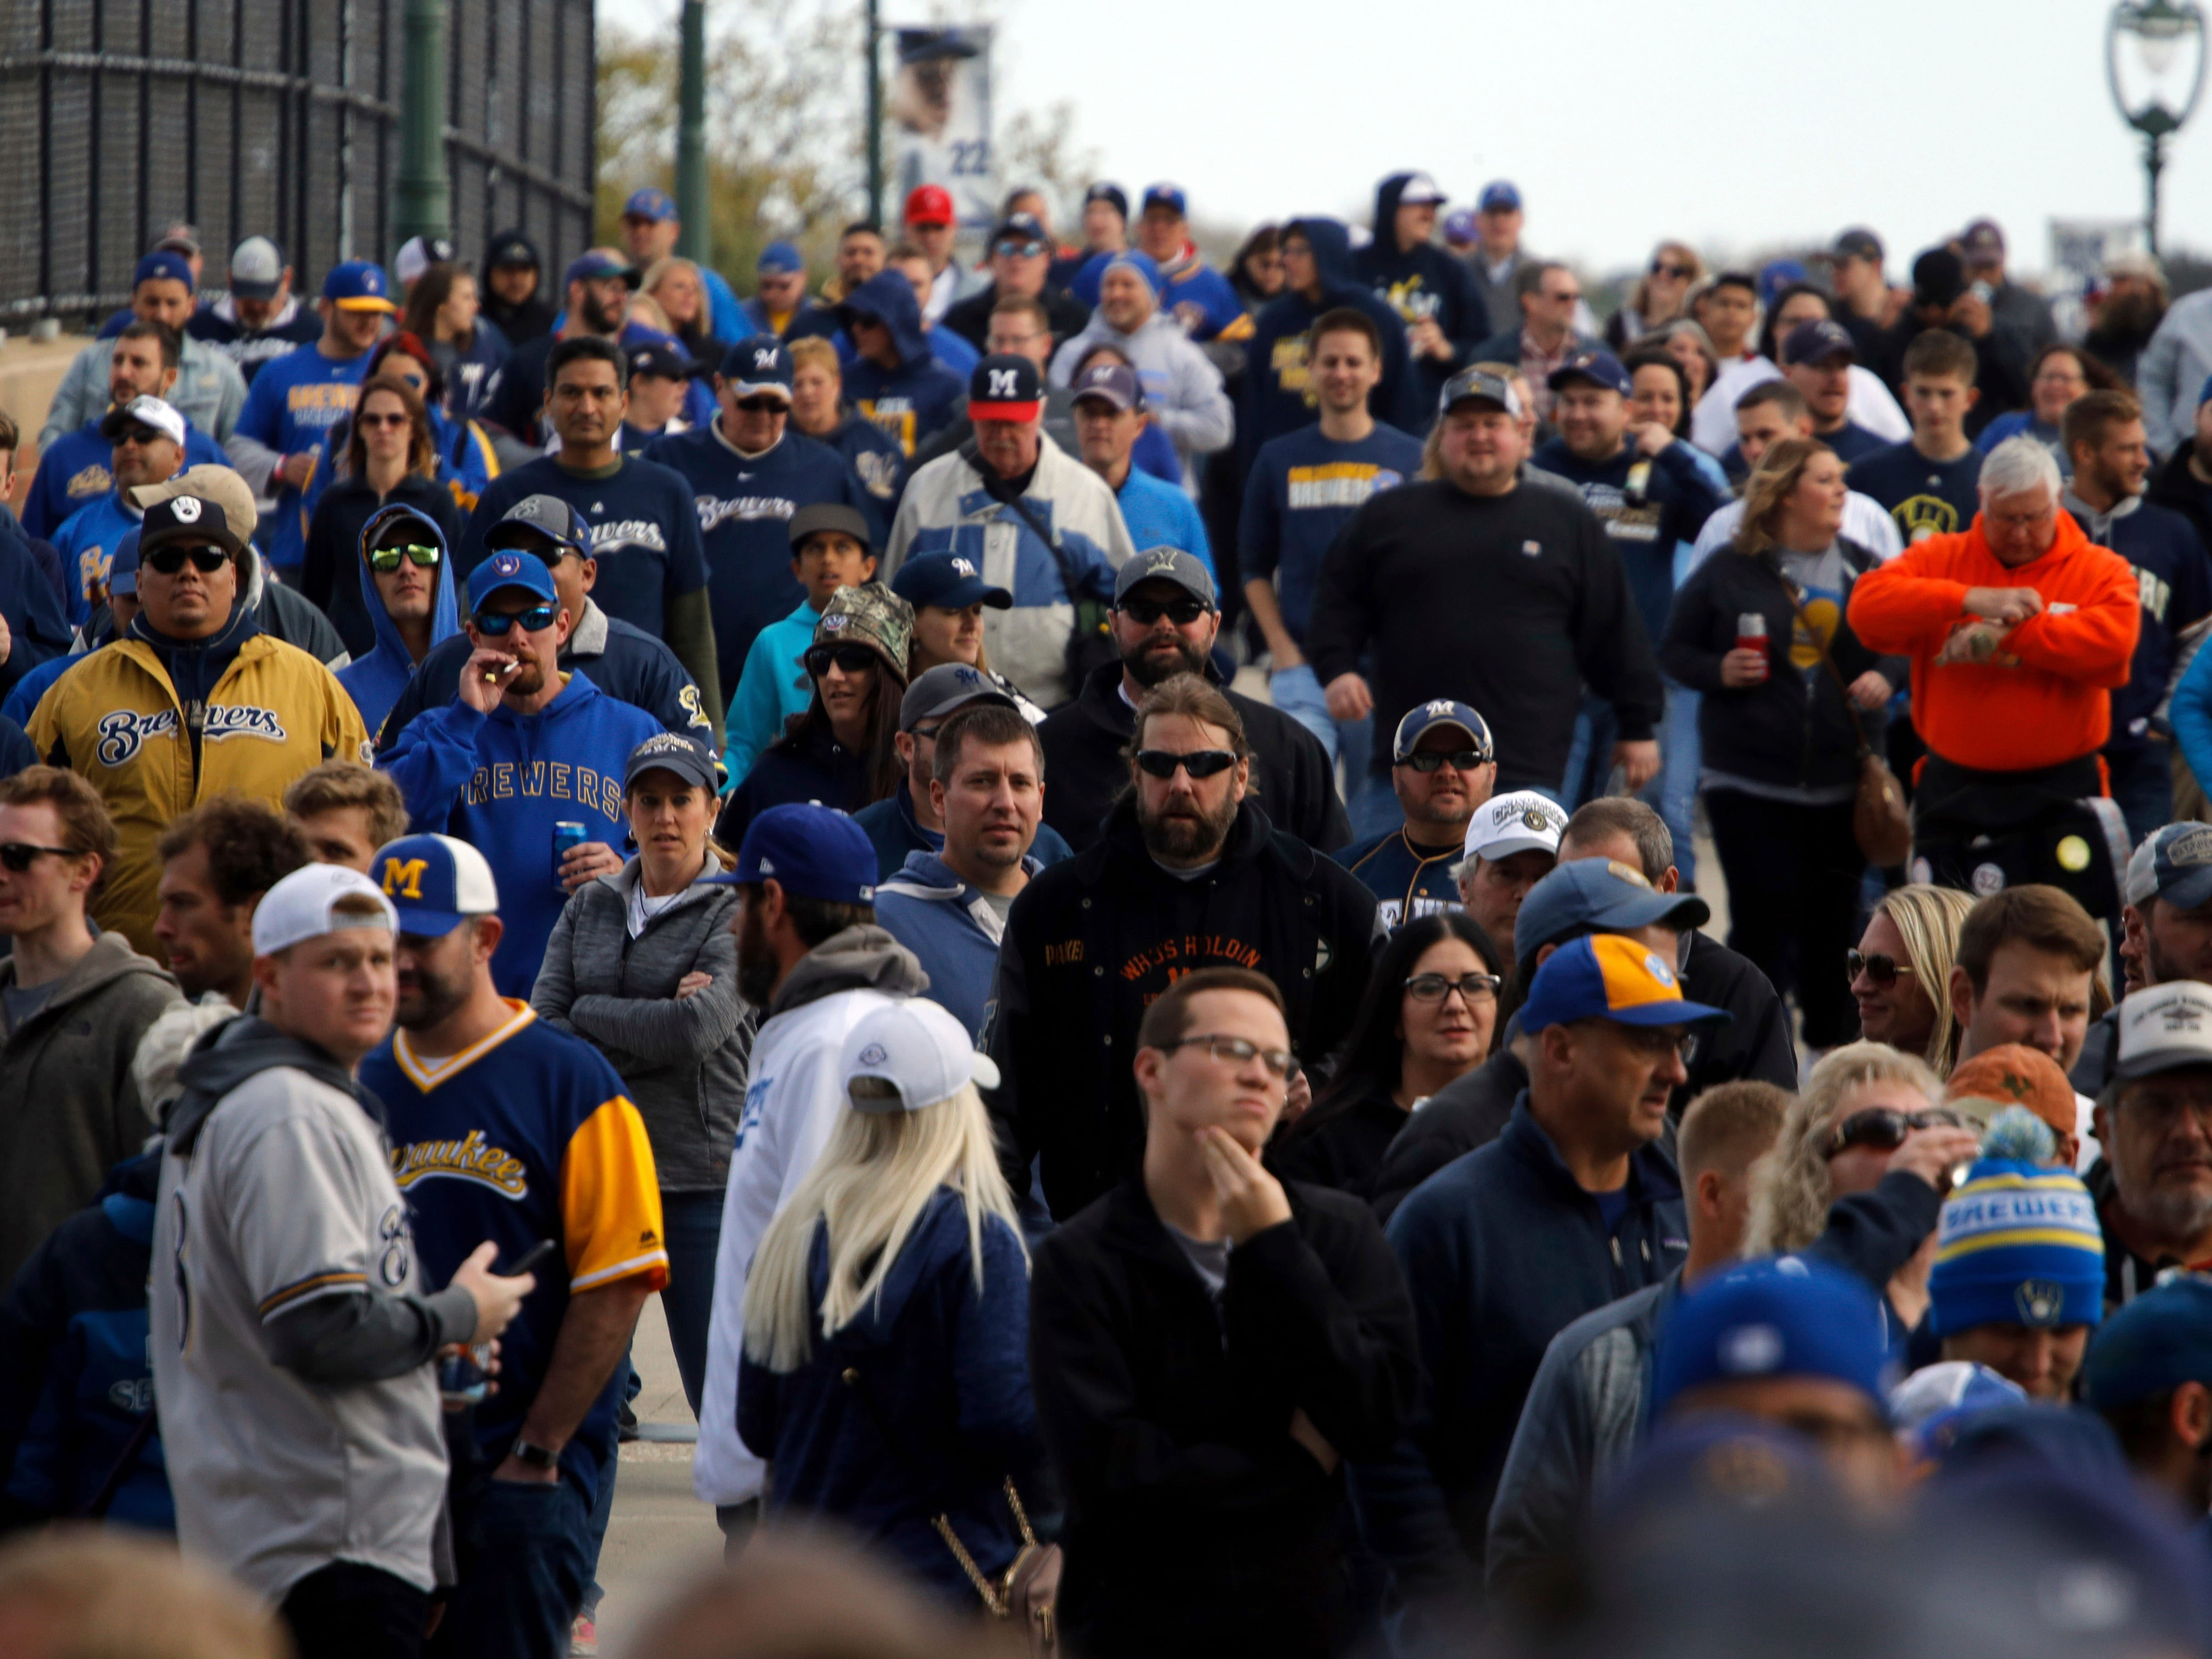 Fans arrive at Miller Park before Game 2 of the National League Championship Series baseball game between the Milwaukee Brewers and the Los Angeles Dodgers